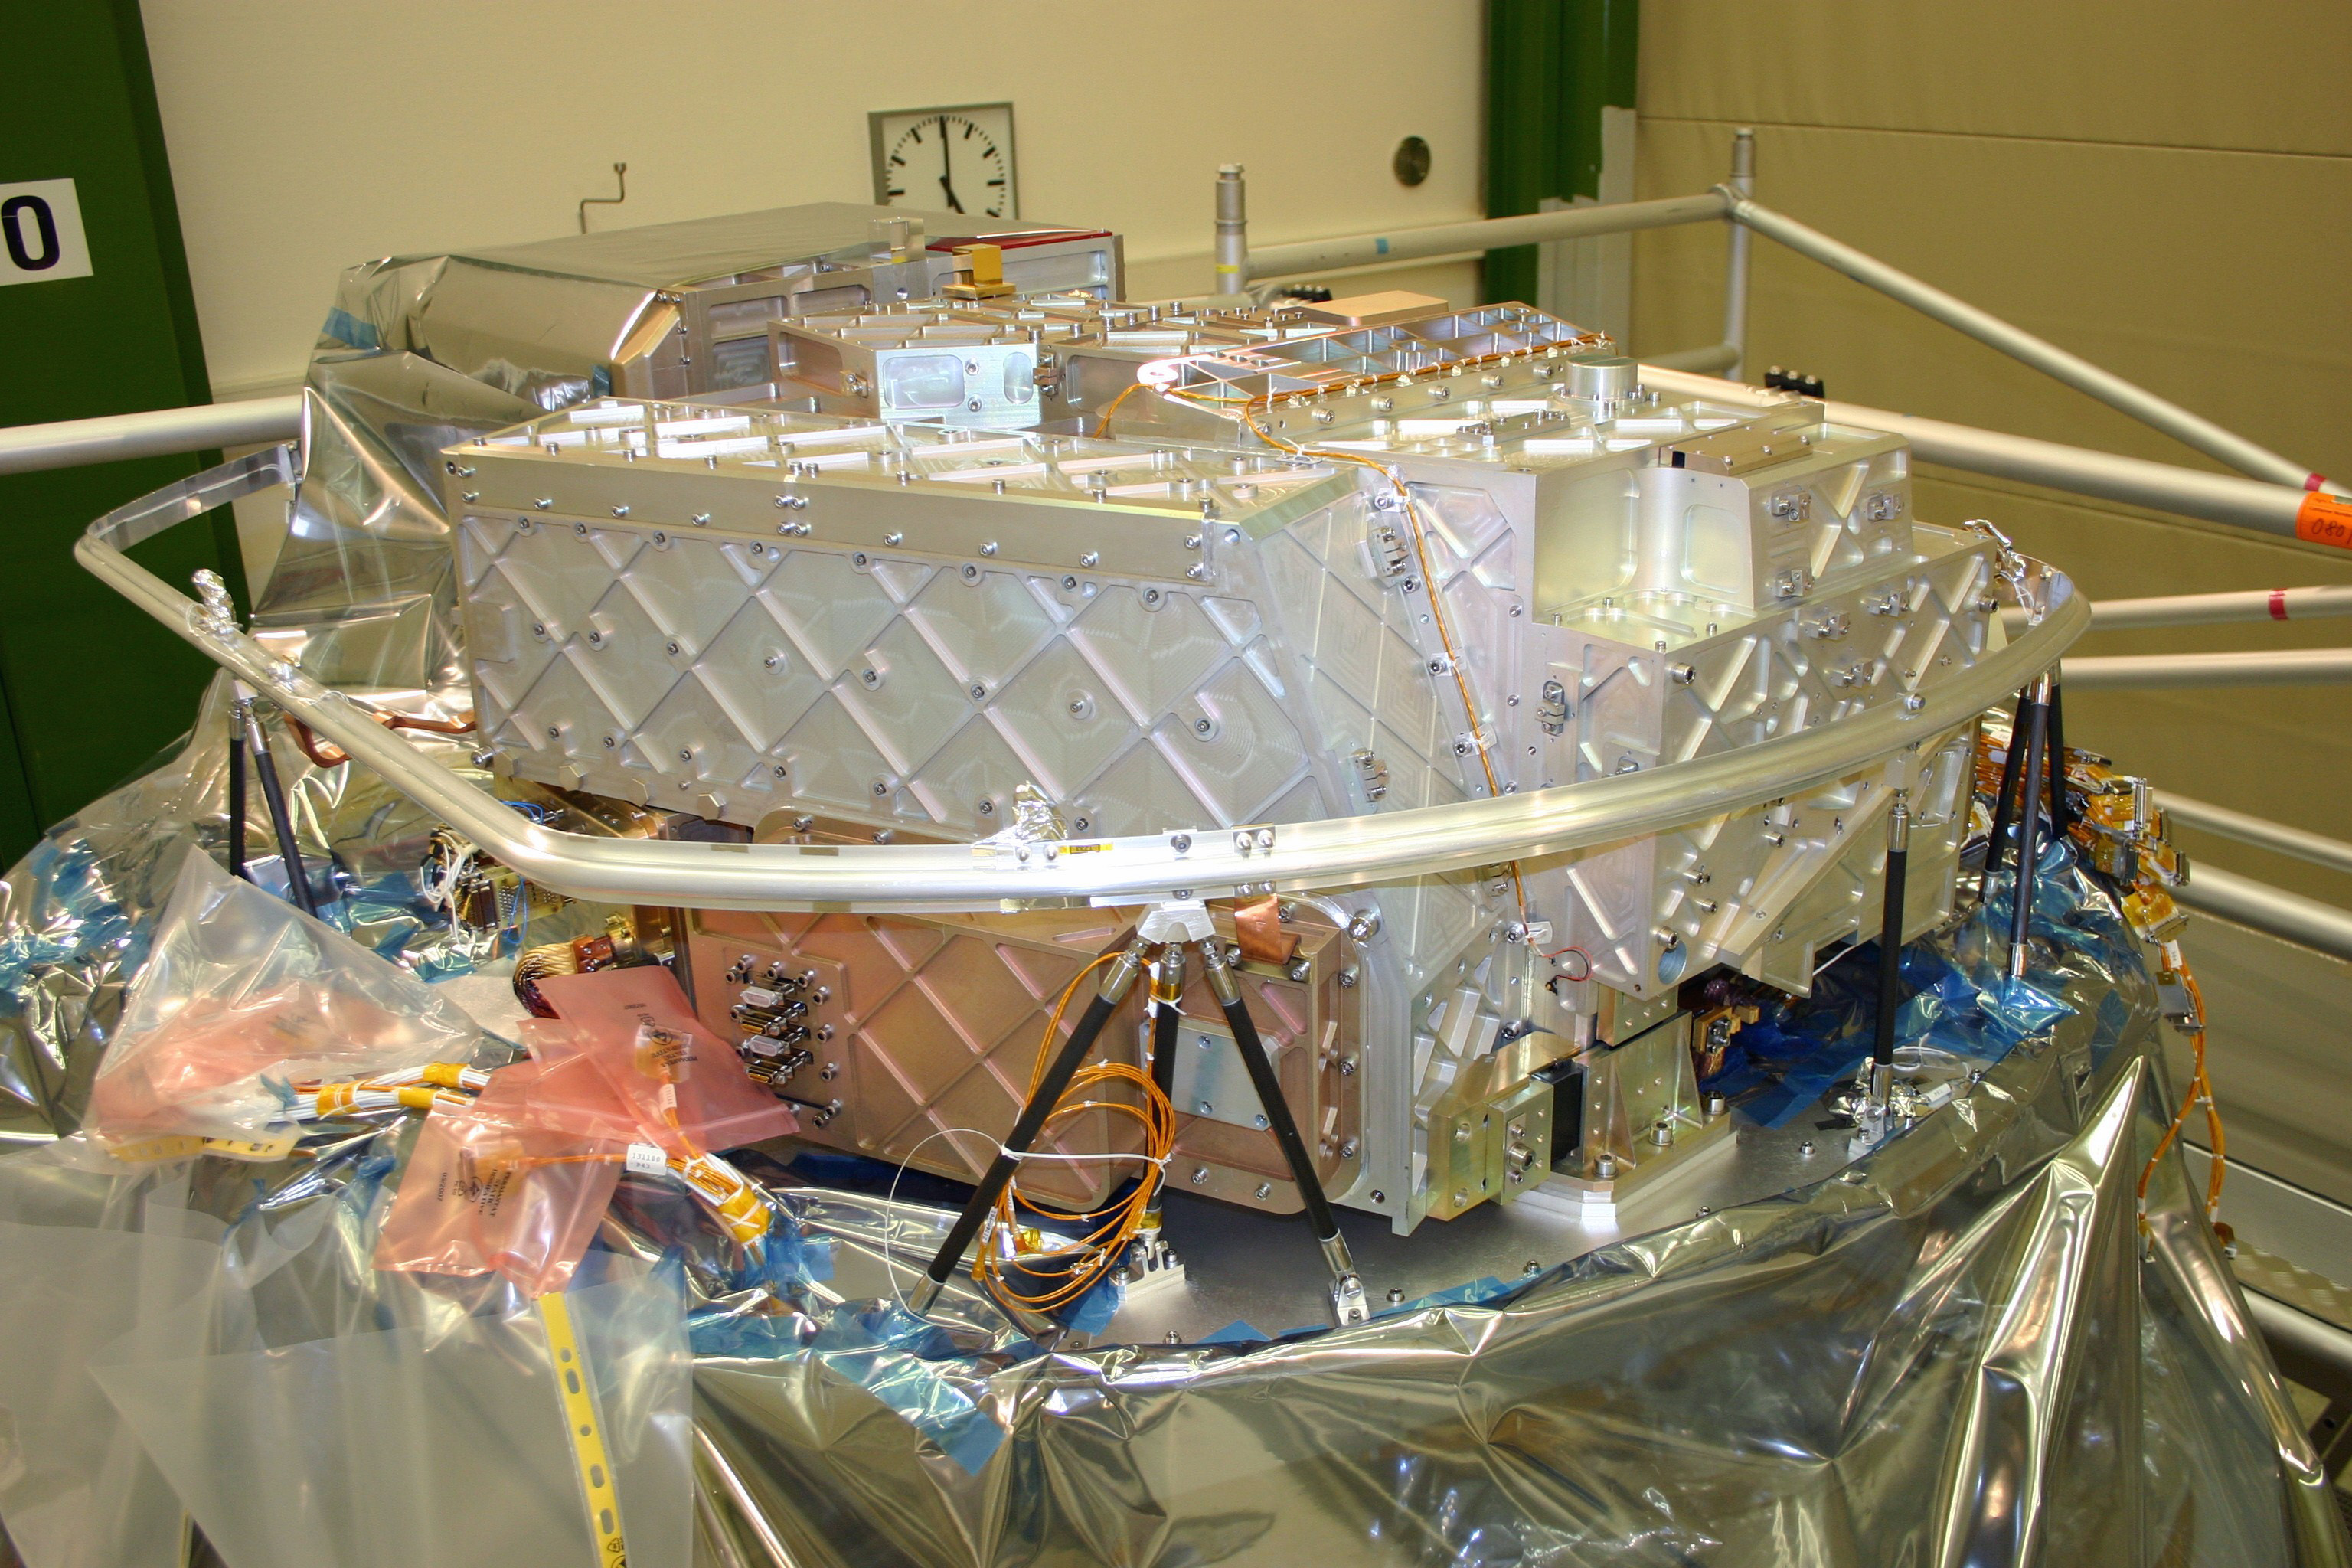 PACS FM FPU mounted on the Herschel flight cryostat optical bench in Astrium, Friedrichshafen, Germany.